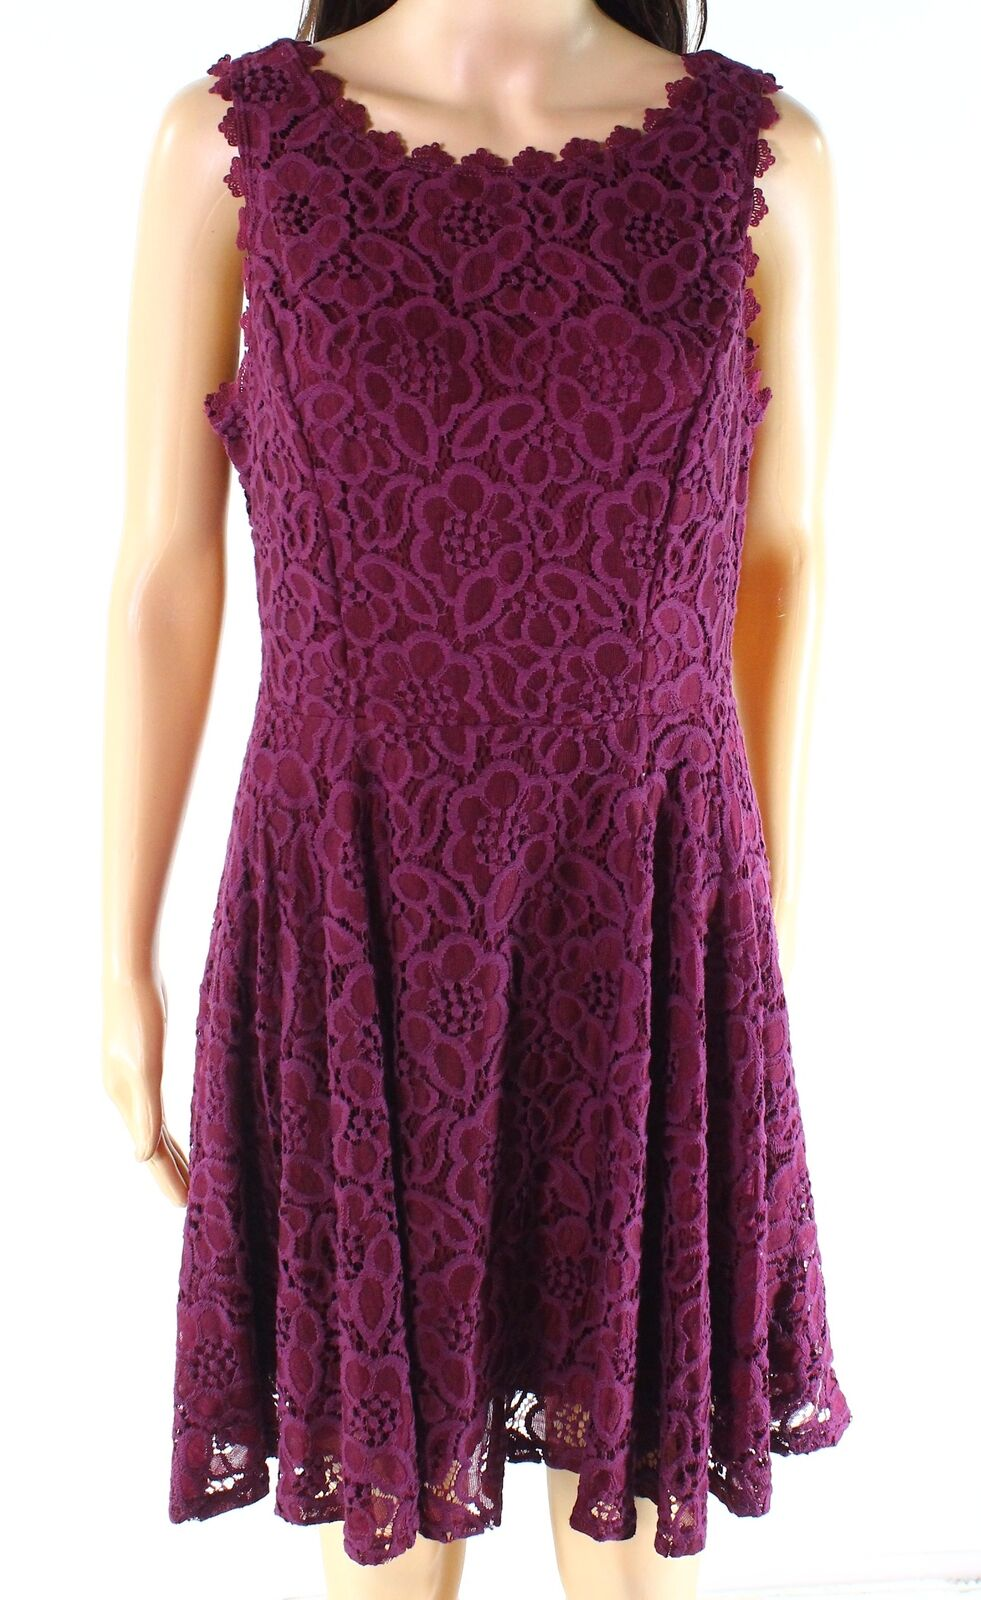 City Triangles NEW Red Plum Size 9 Junior A-Line Floral Lace Dress 52 #819